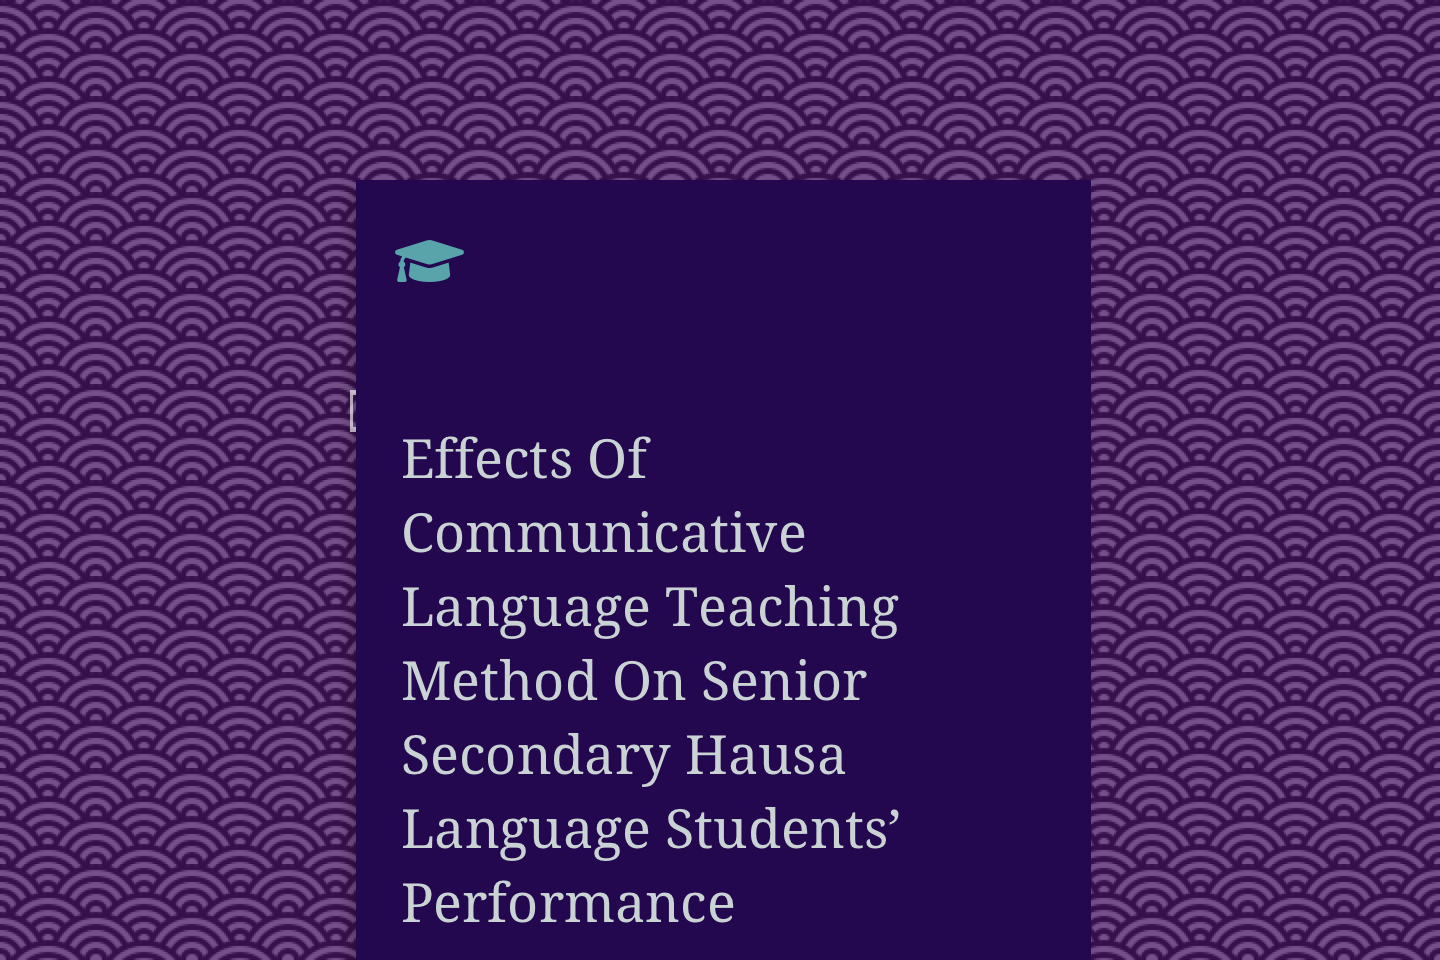 Effects Of Communicative Language Teaching Method On Senior Secondary Hausa Language Students' Performance In Kaduna State, Nigeria